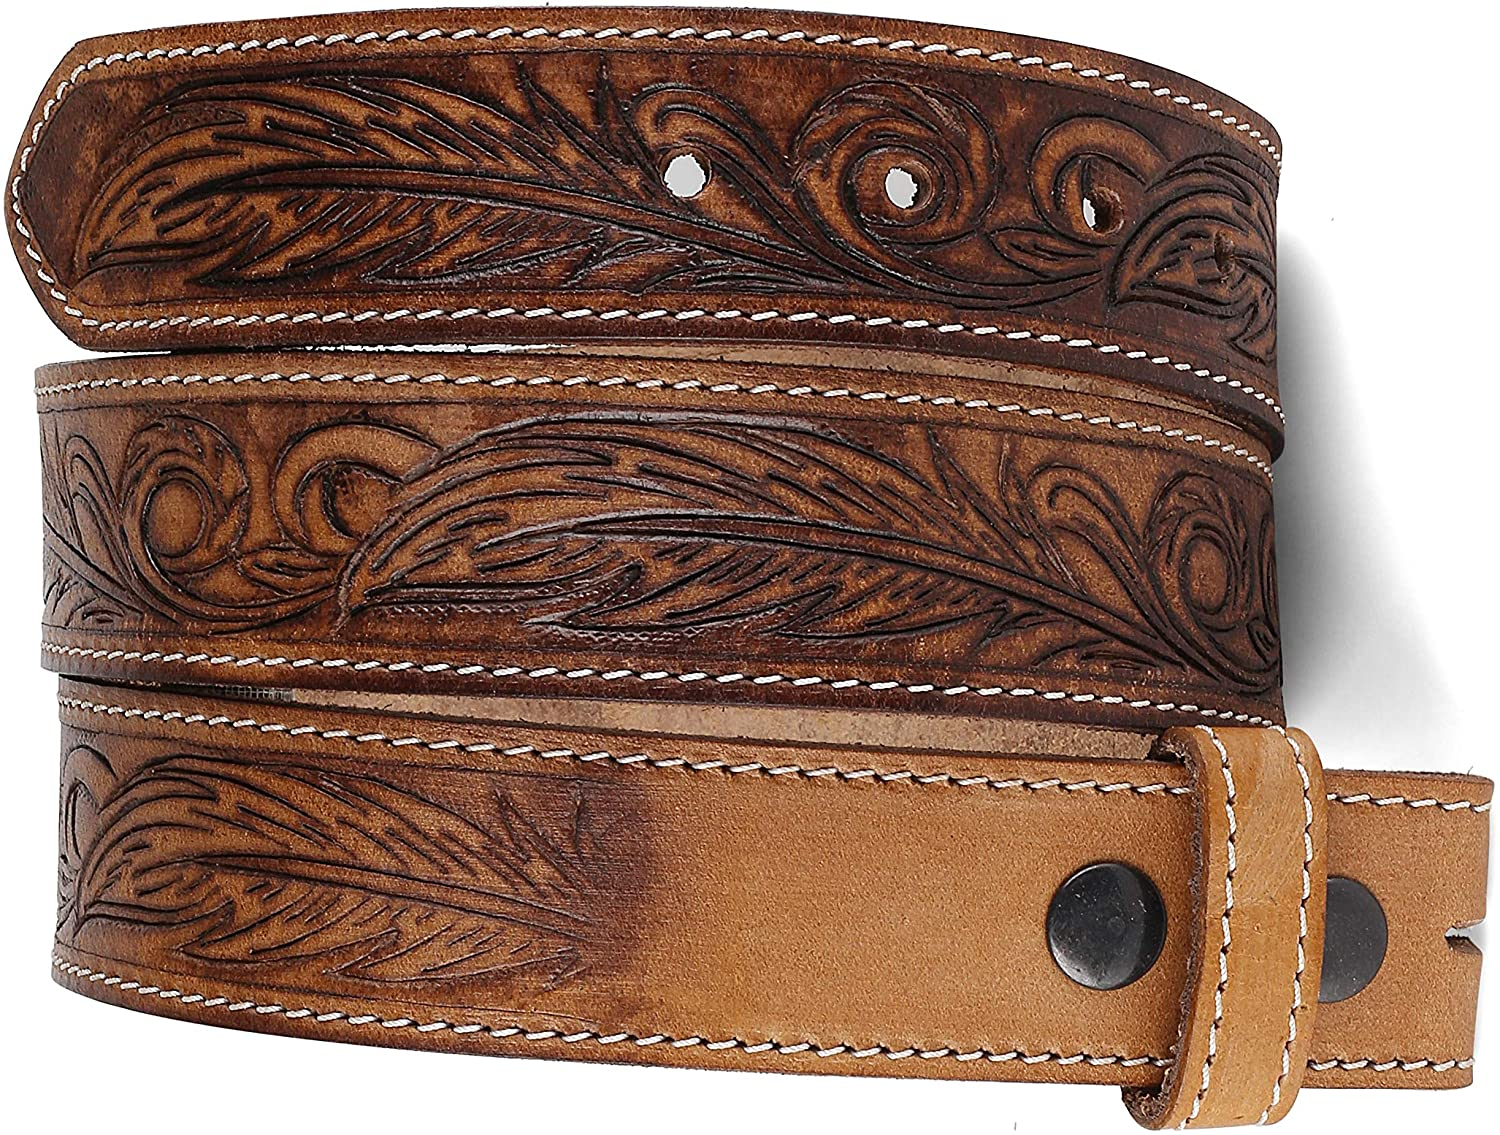 Belt for buckle Western Leather Engraved Tooled Strap w/Snaps for Interchangeable Buckles, USA…